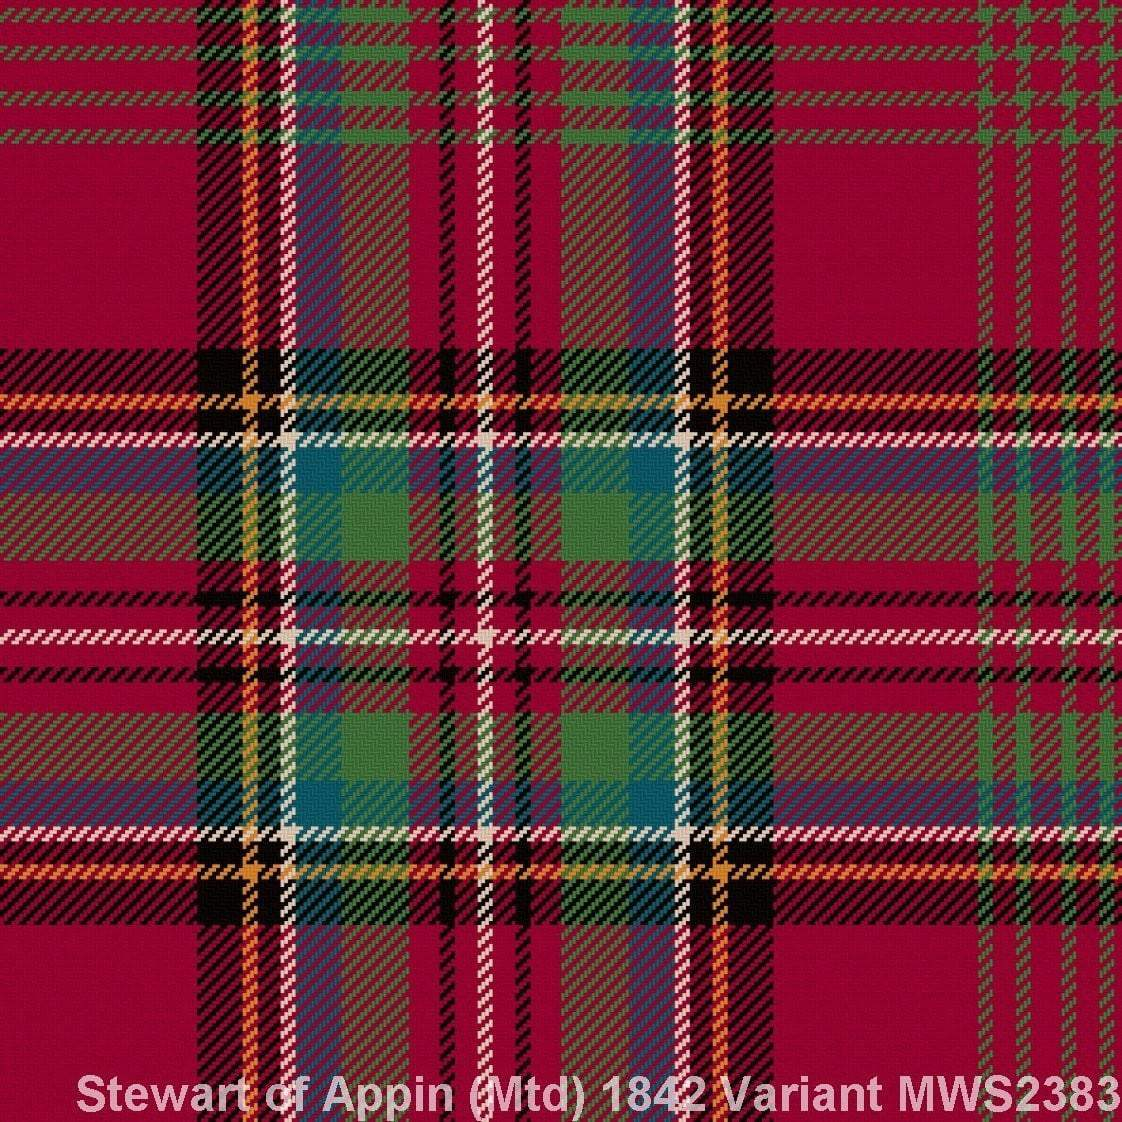 Stewart of Appin Muted 1842 Variant